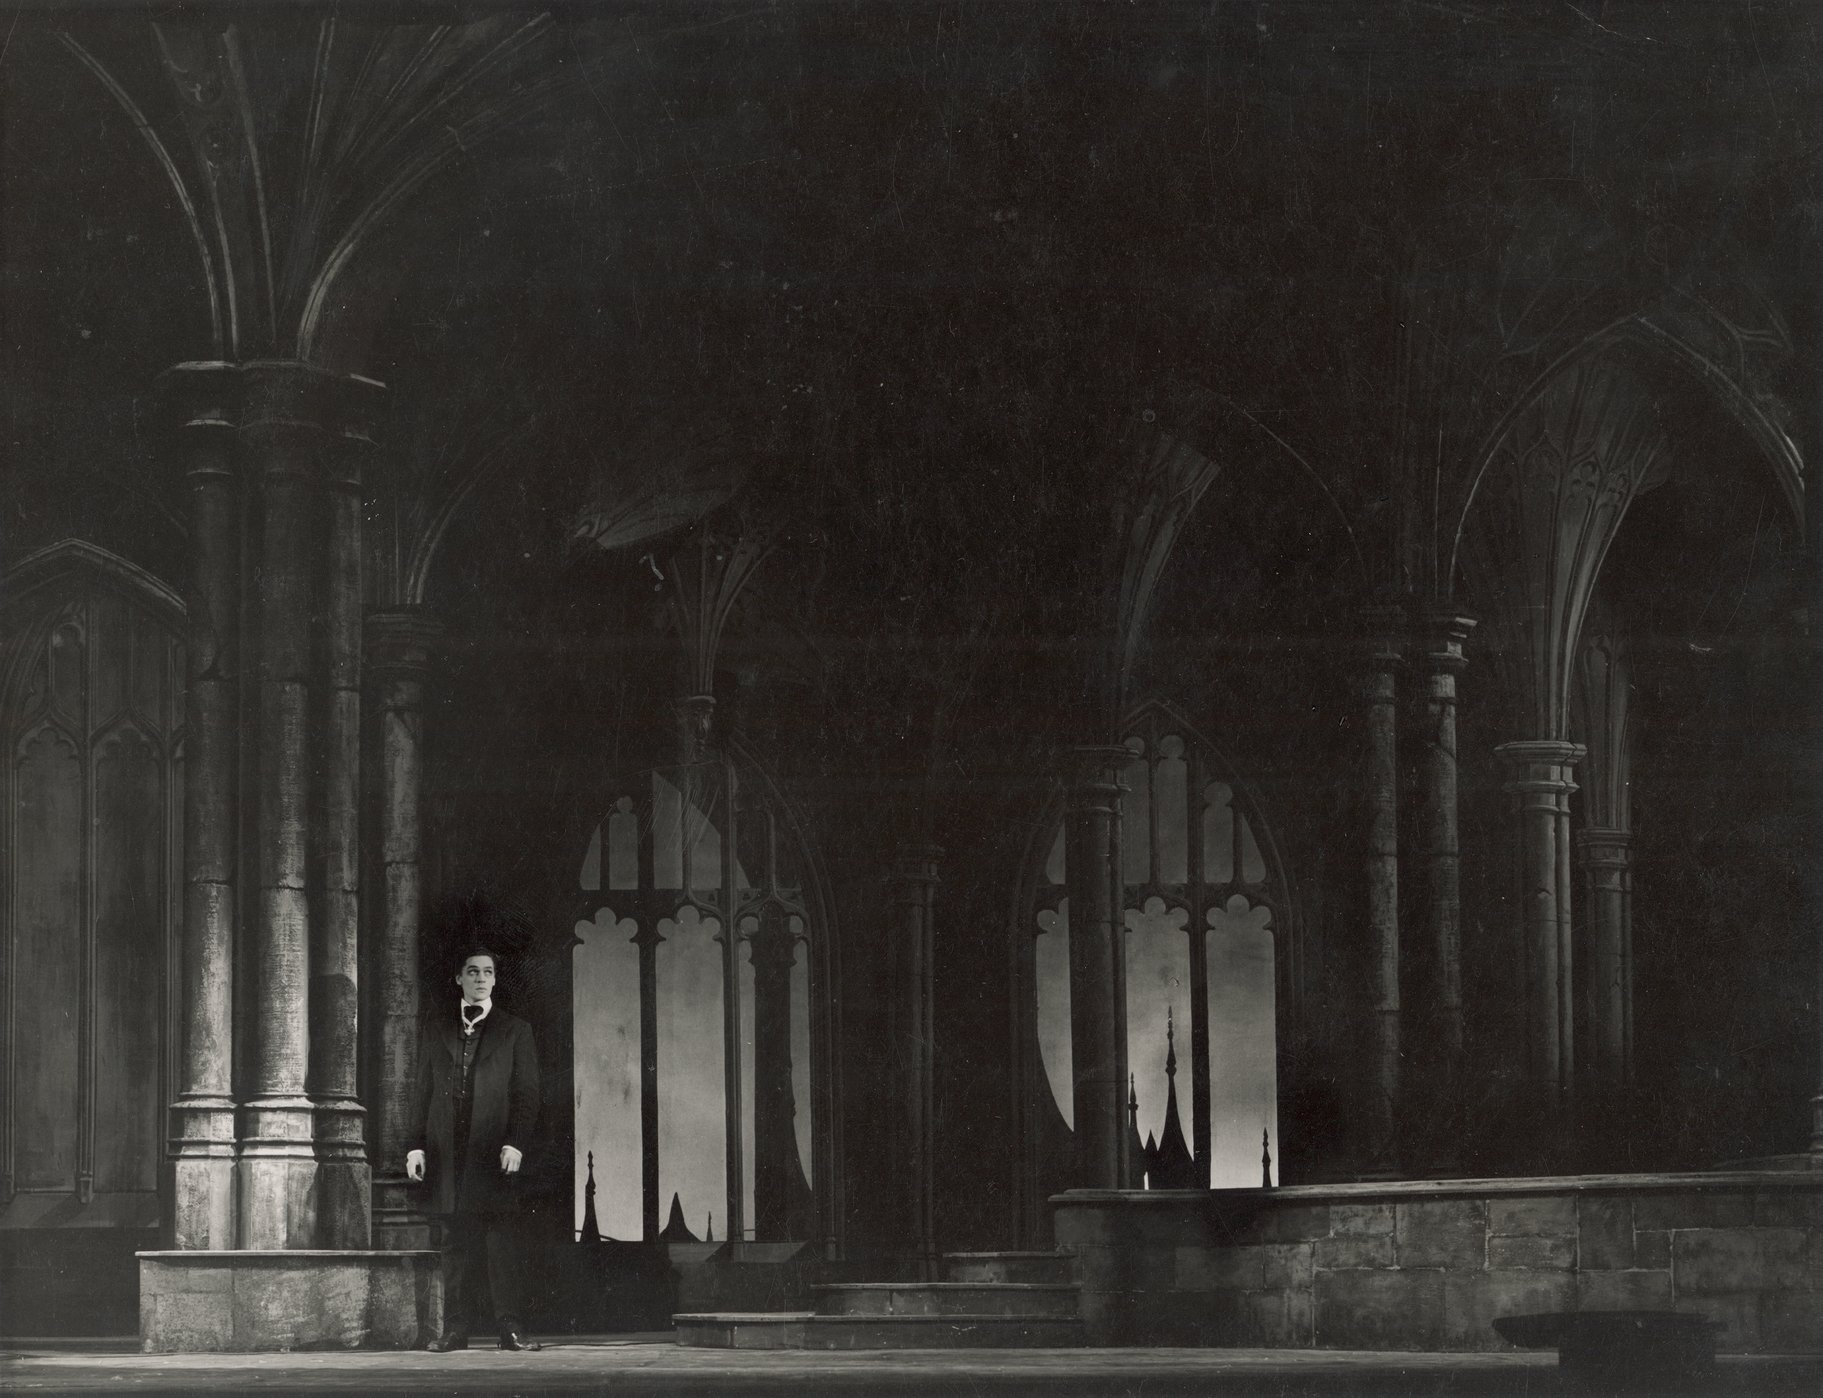 Hamlet stands alone in an old building with tall arches.